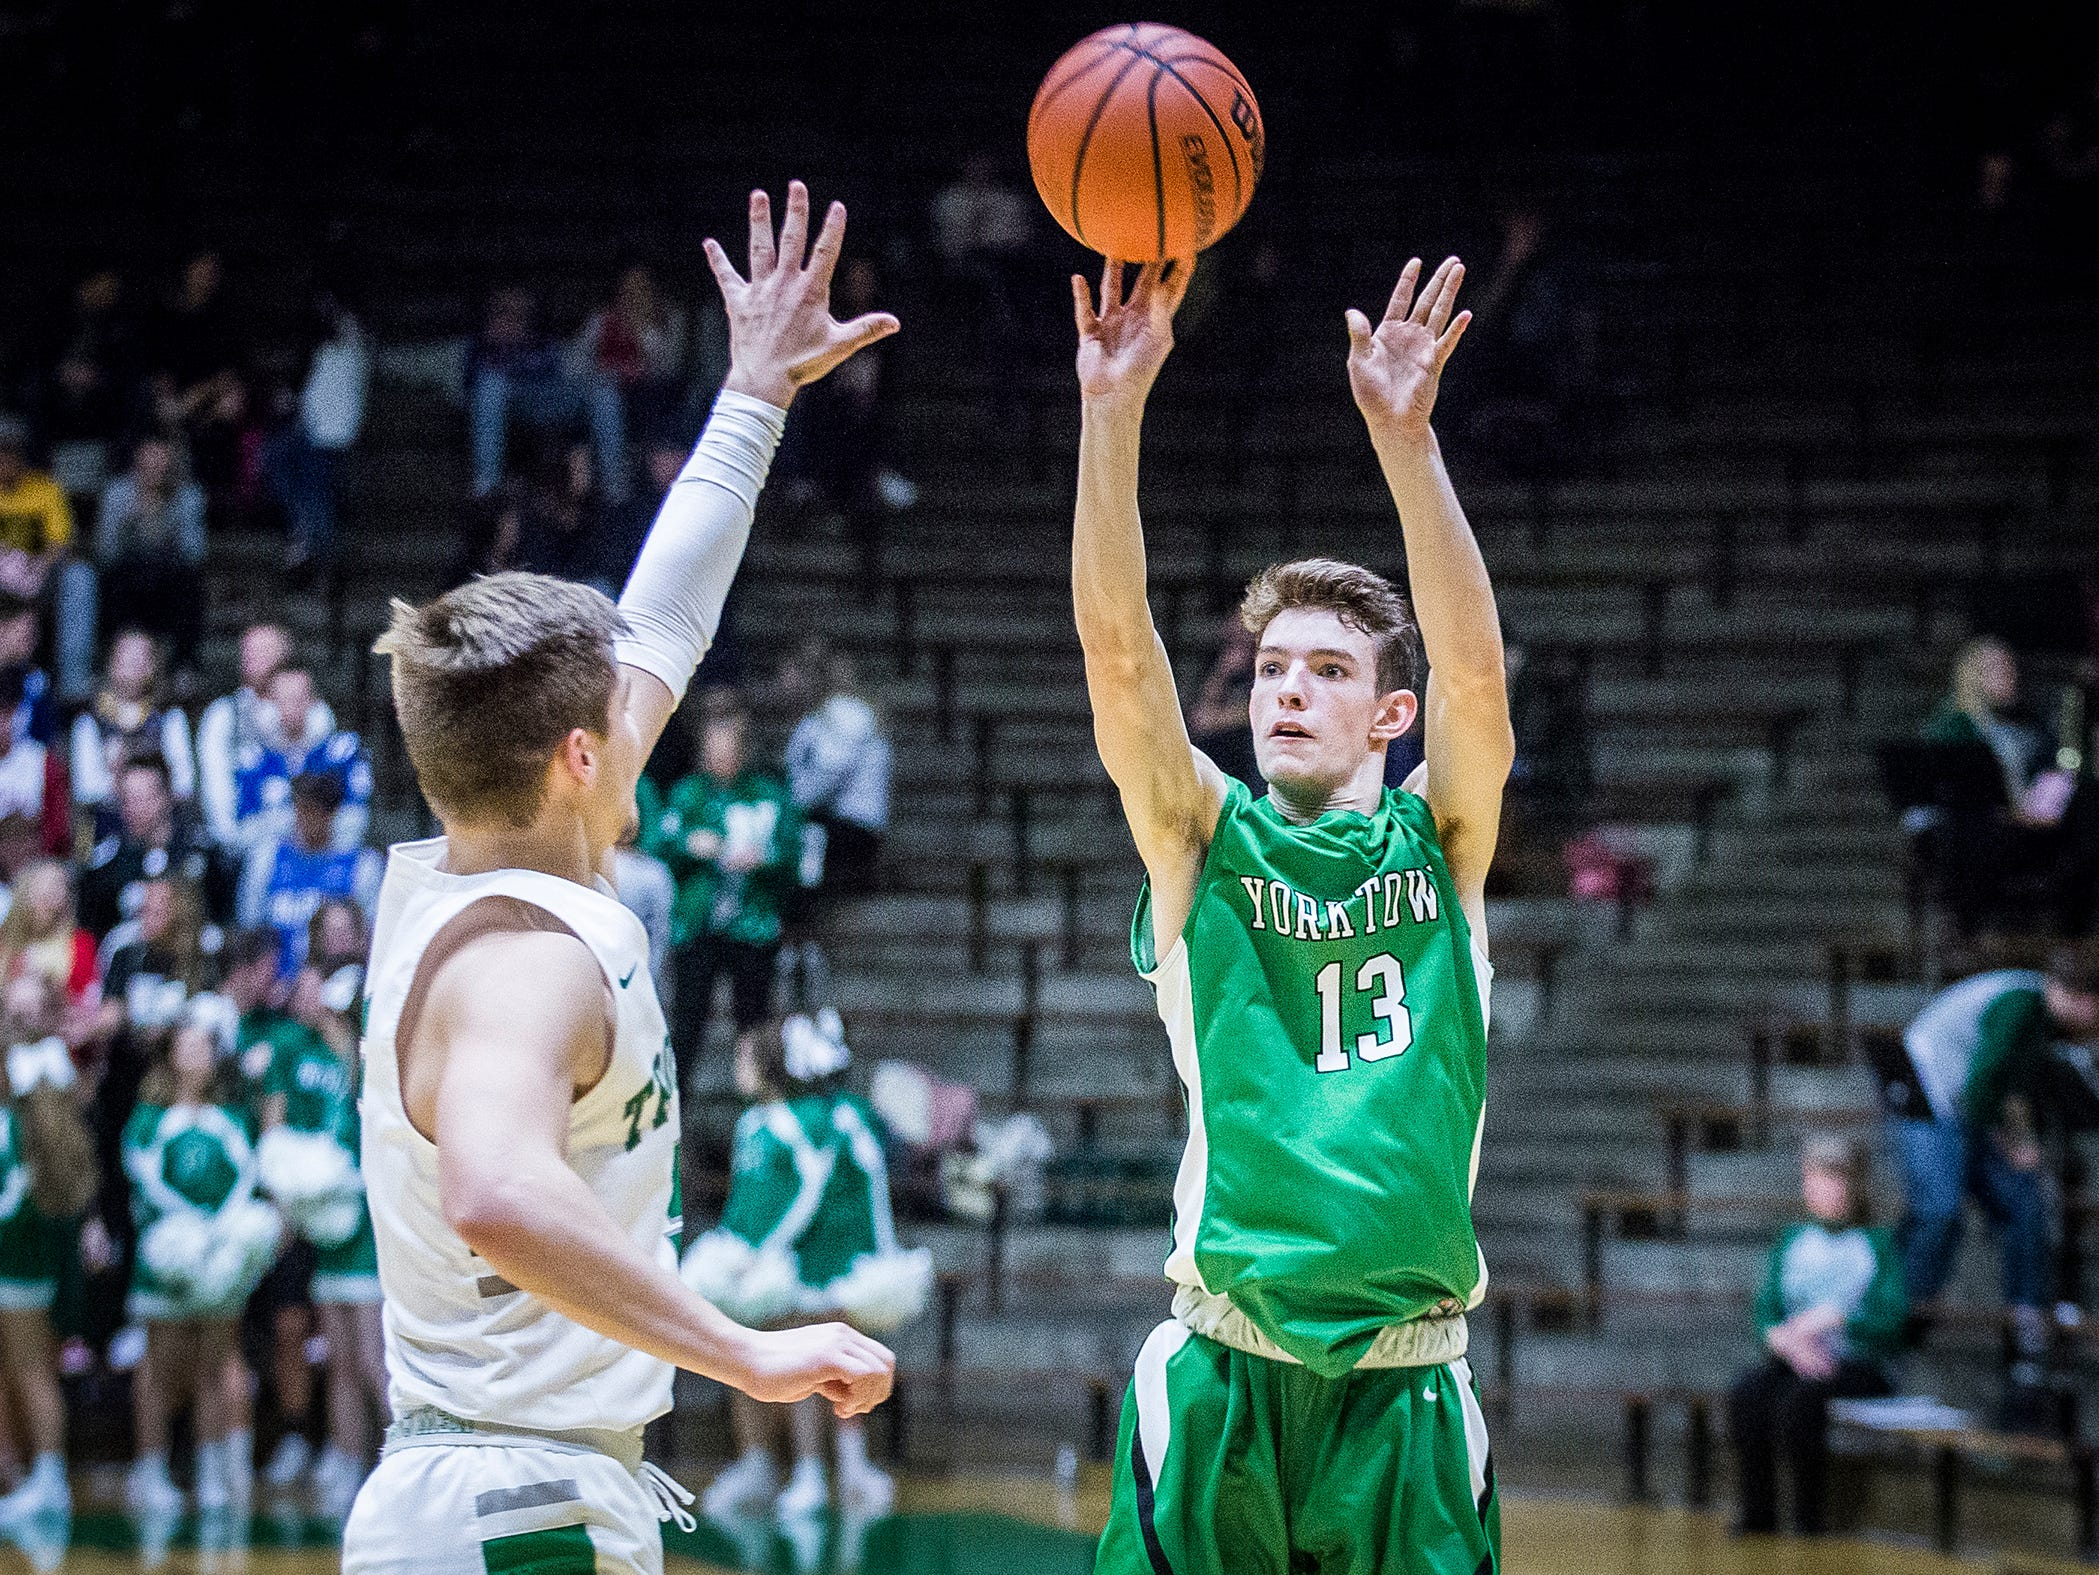 Yorktown's Luke Dunn shoots past New Castle's defense during their game at New Castle High School Friday, Jan. 18, 2019.